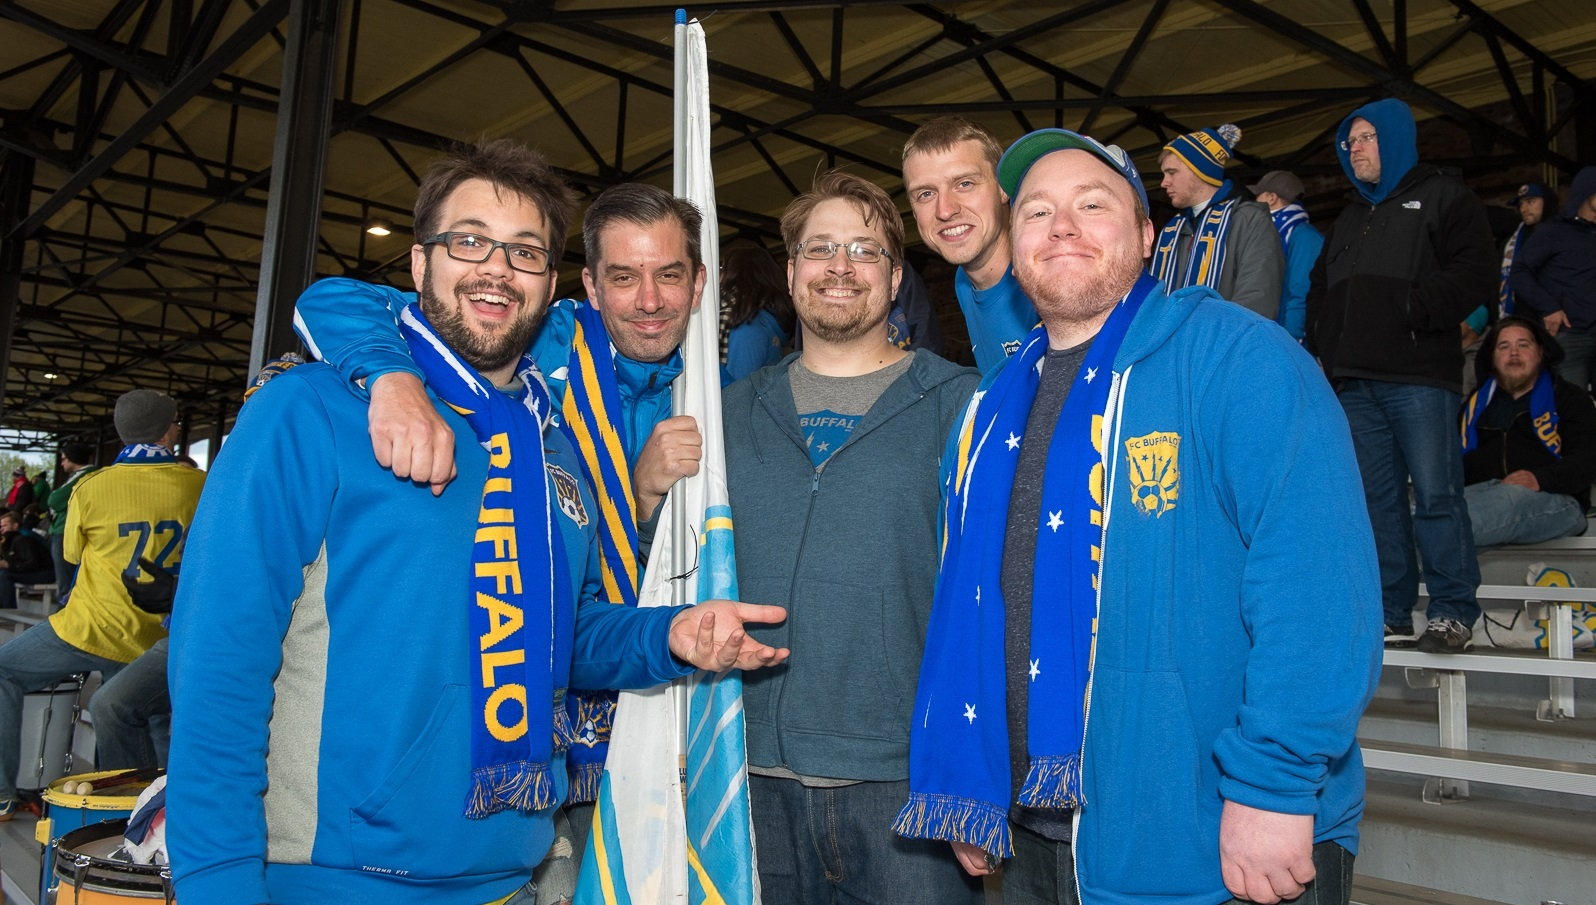 Members of The Situation Room, FC Buffalo's supporters group, pose for the camera. (Matt Weinberg/Special to The News)